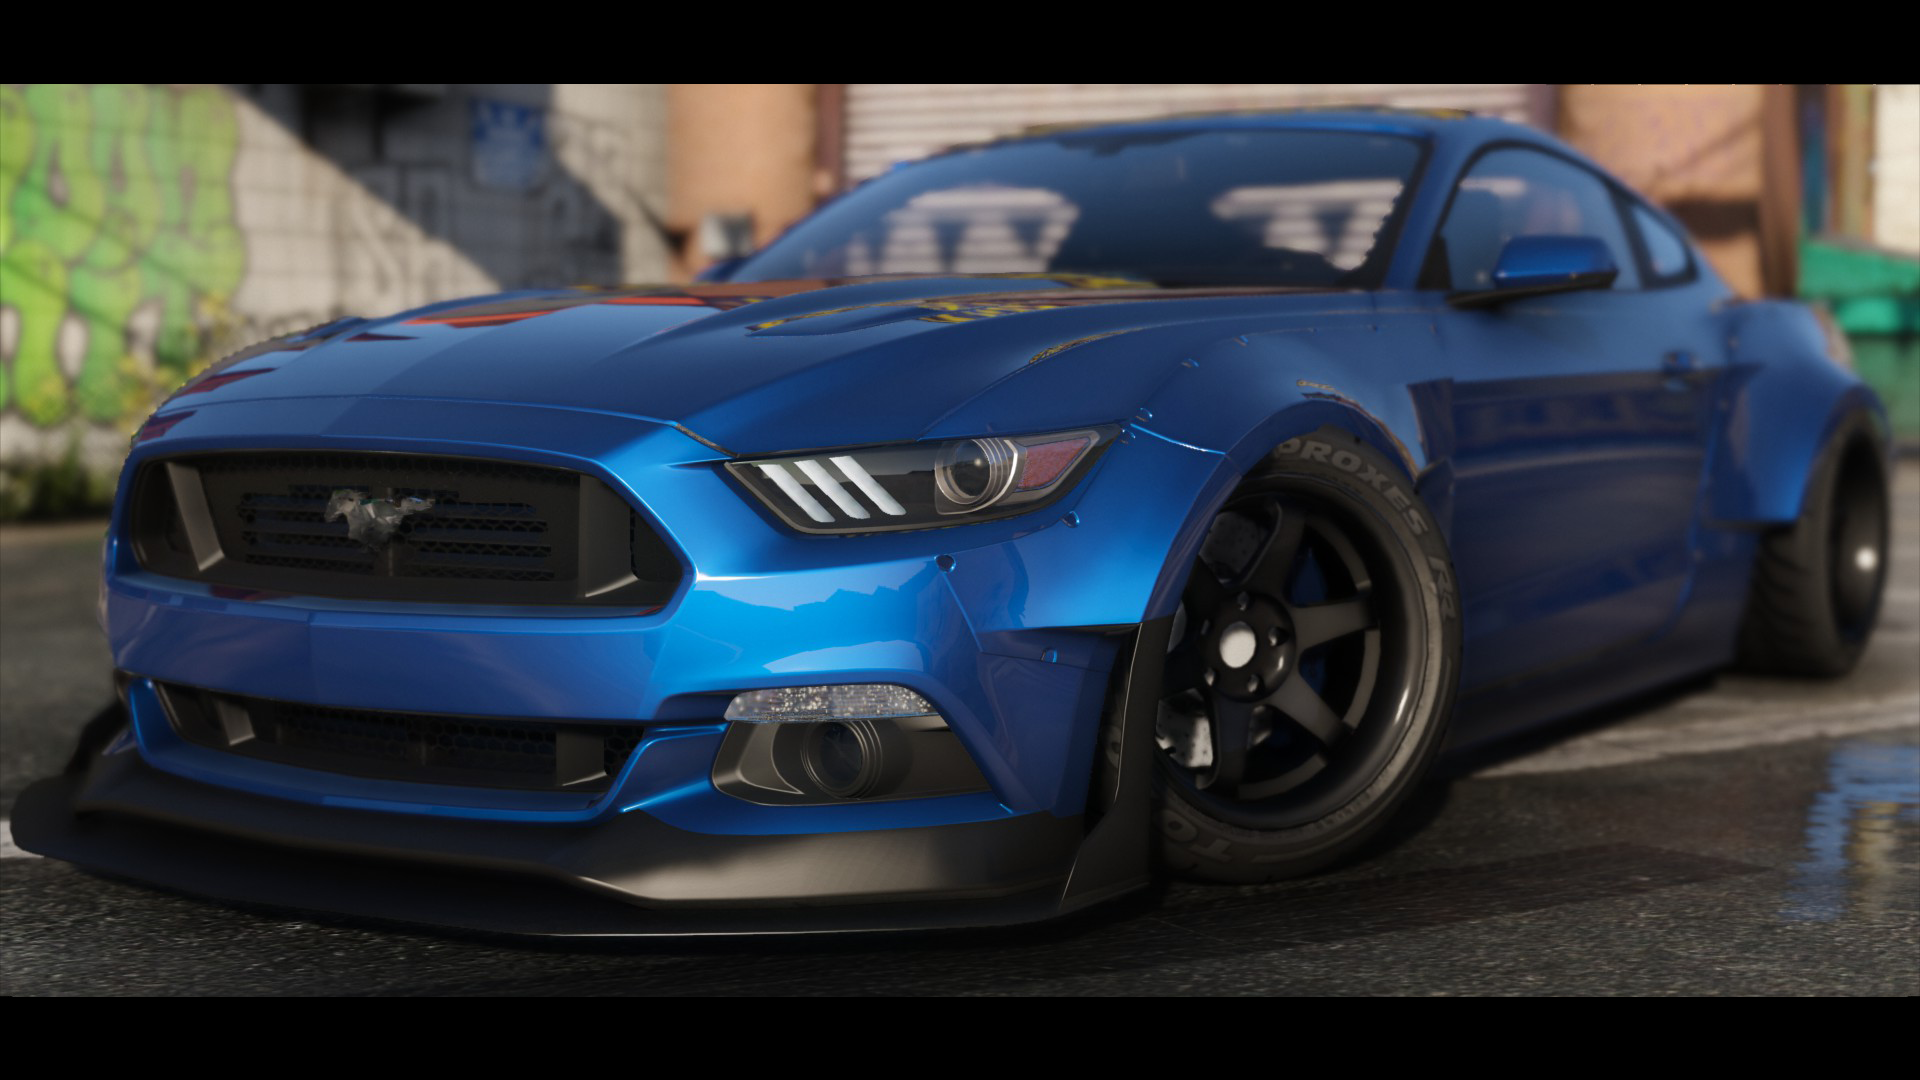 2015 ford mustang hq wbody kit shelbykit animated - Mustang modification ...